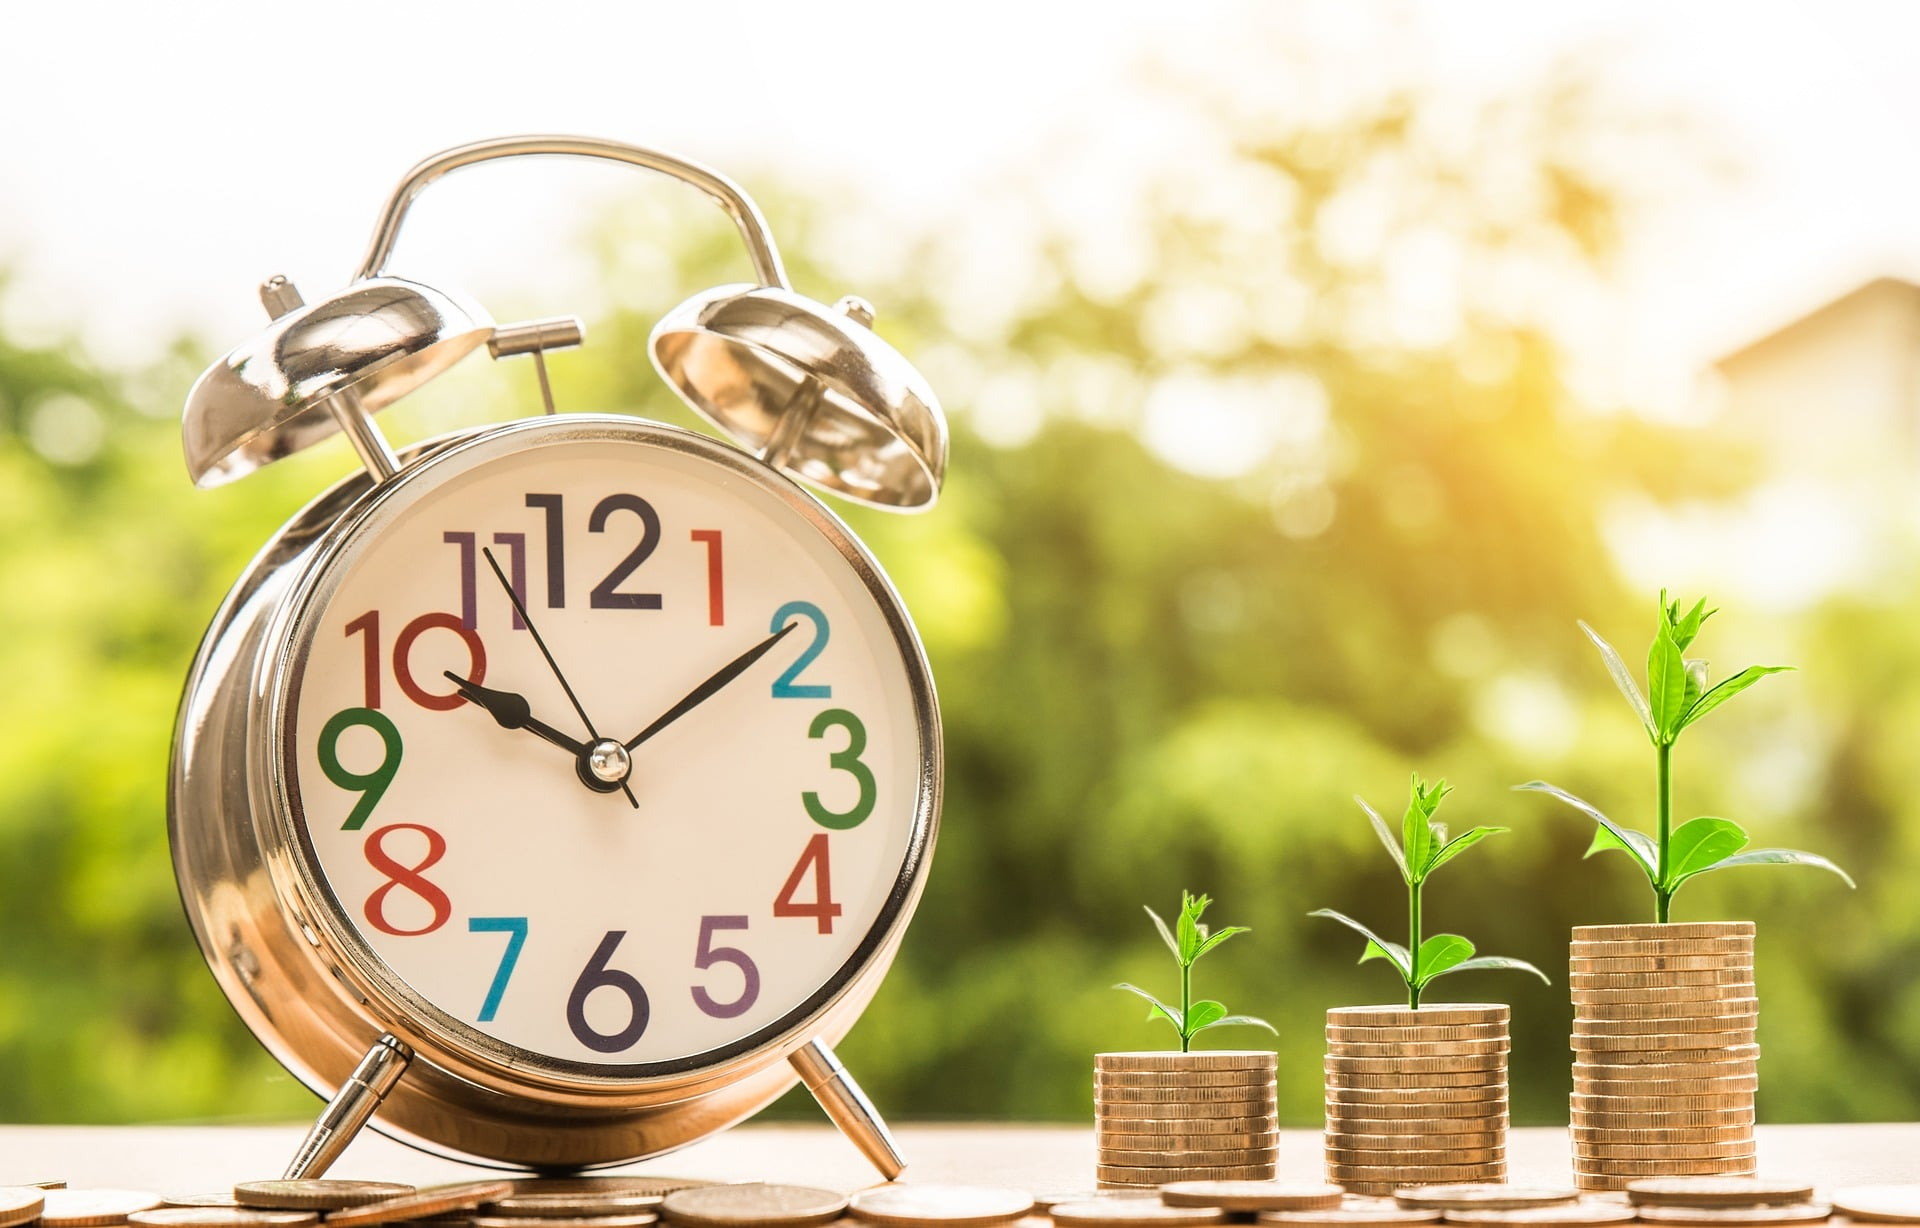 Clock with Money- Return on Investment (ROI)